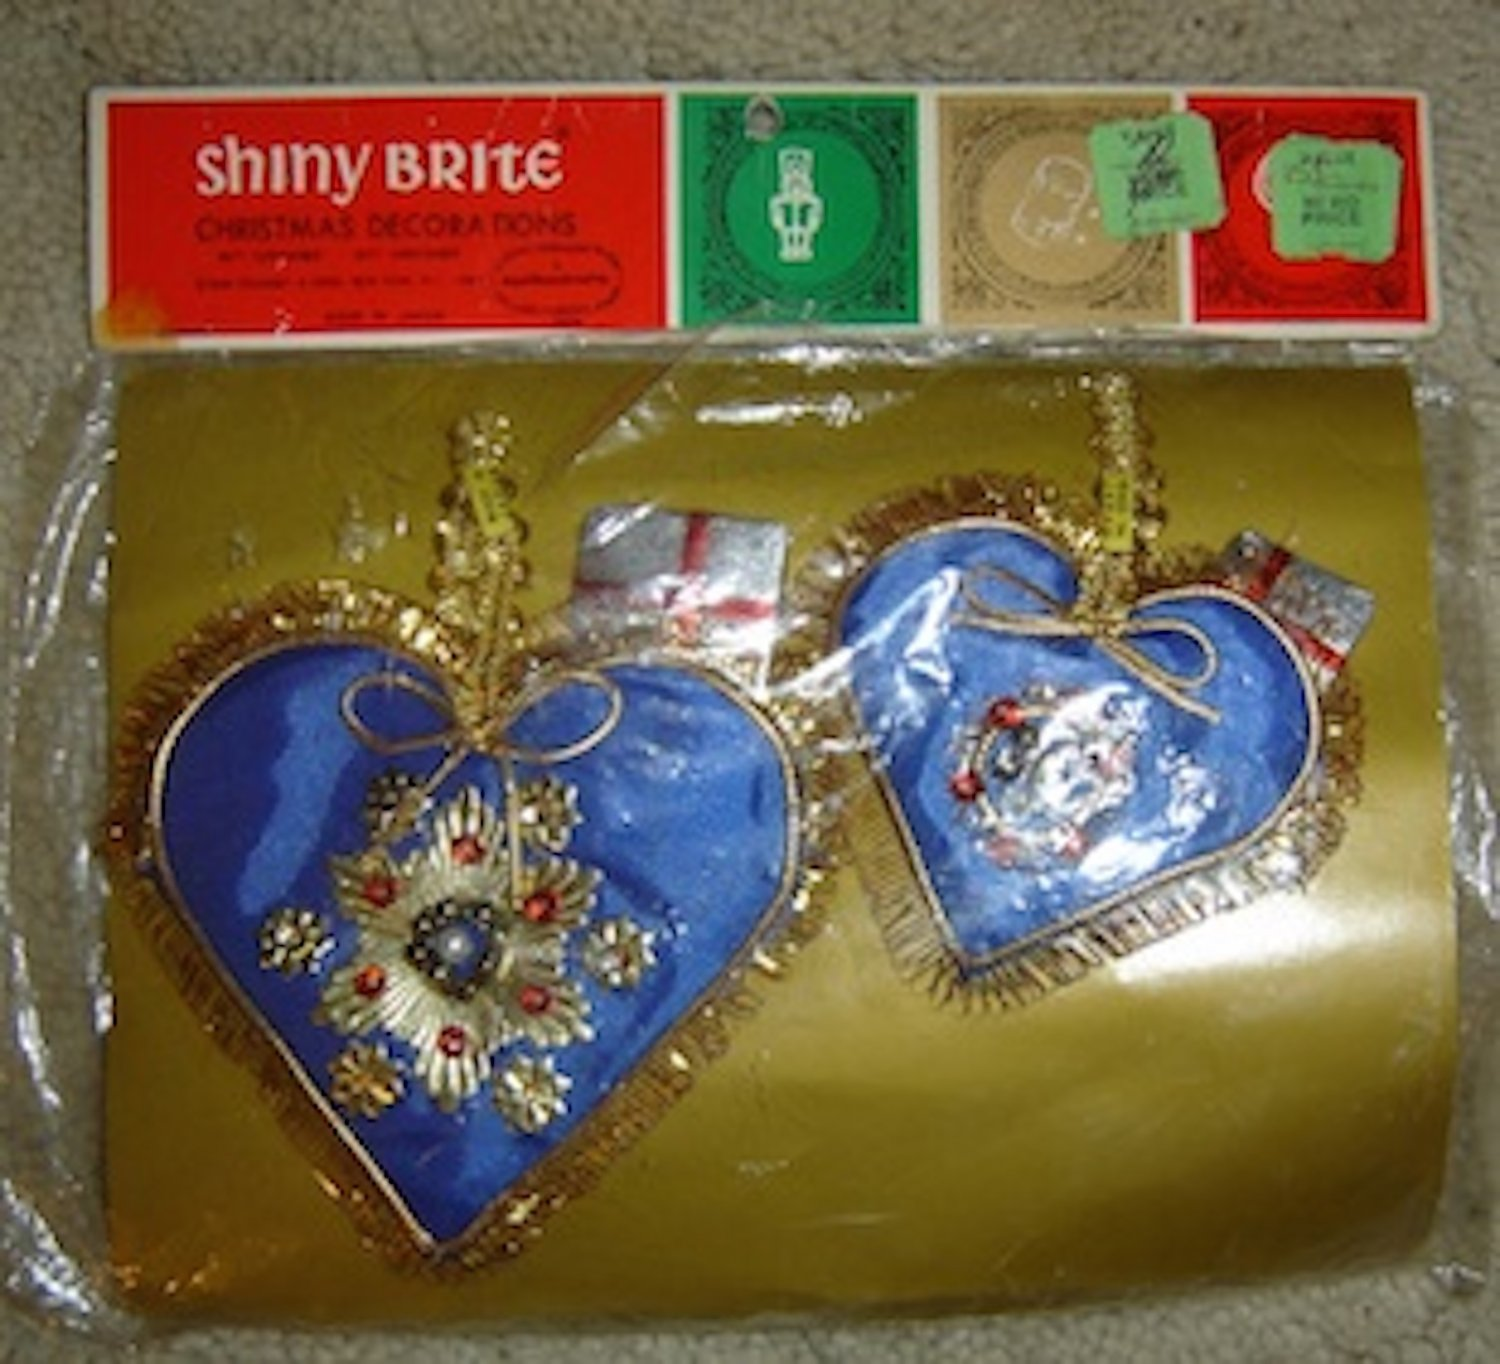 Vintage Shiny Brite Christmas Decorations/Ornaments, Japan, Blue/Gold Hearts